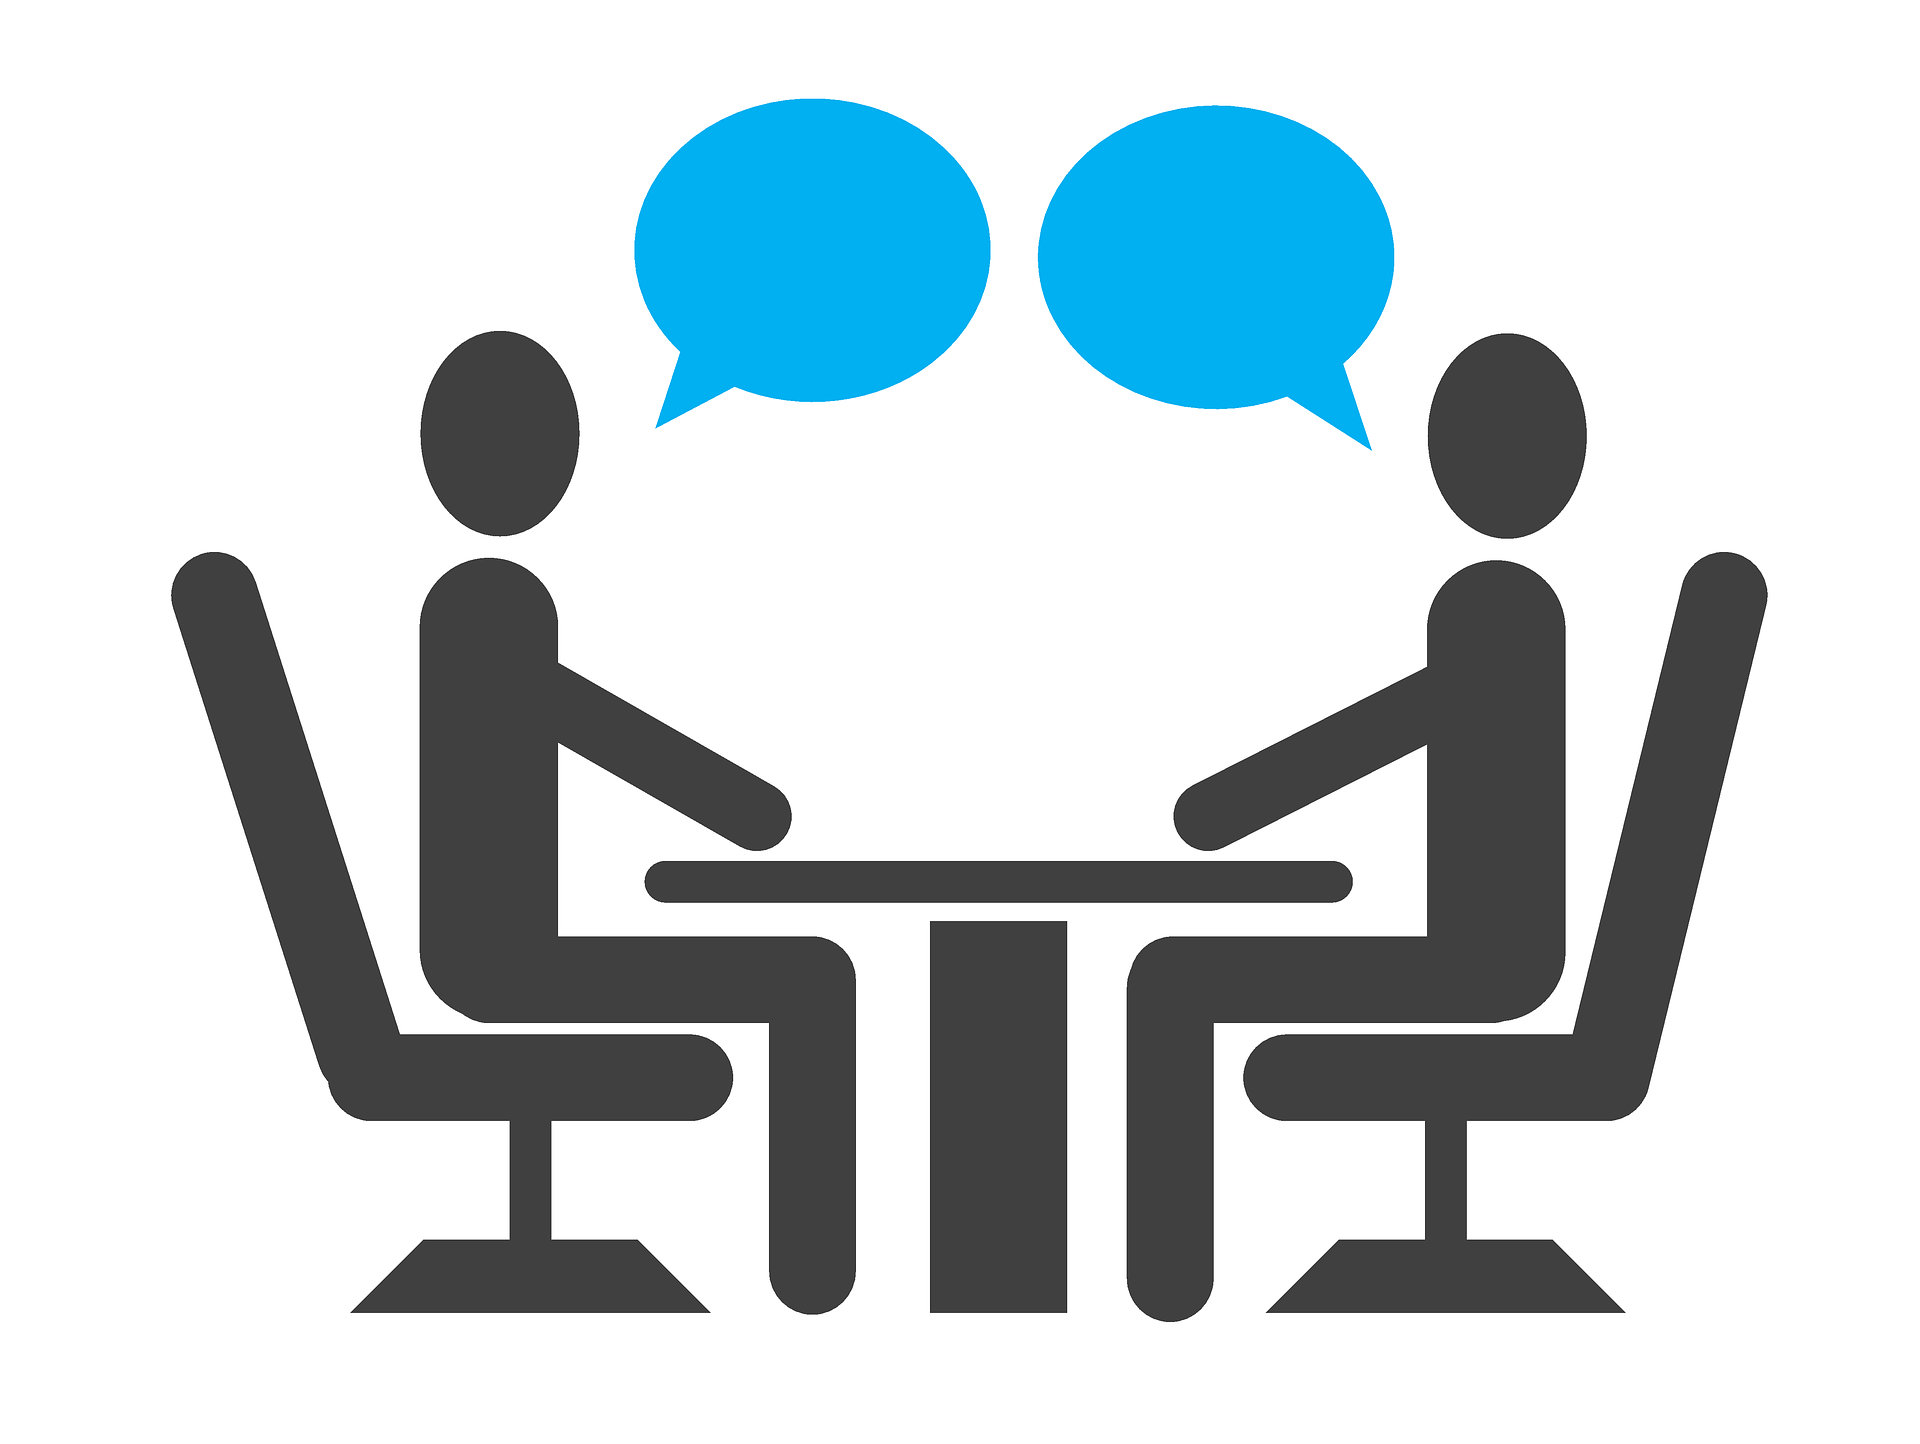 Image is of two people sitting and talking at a table